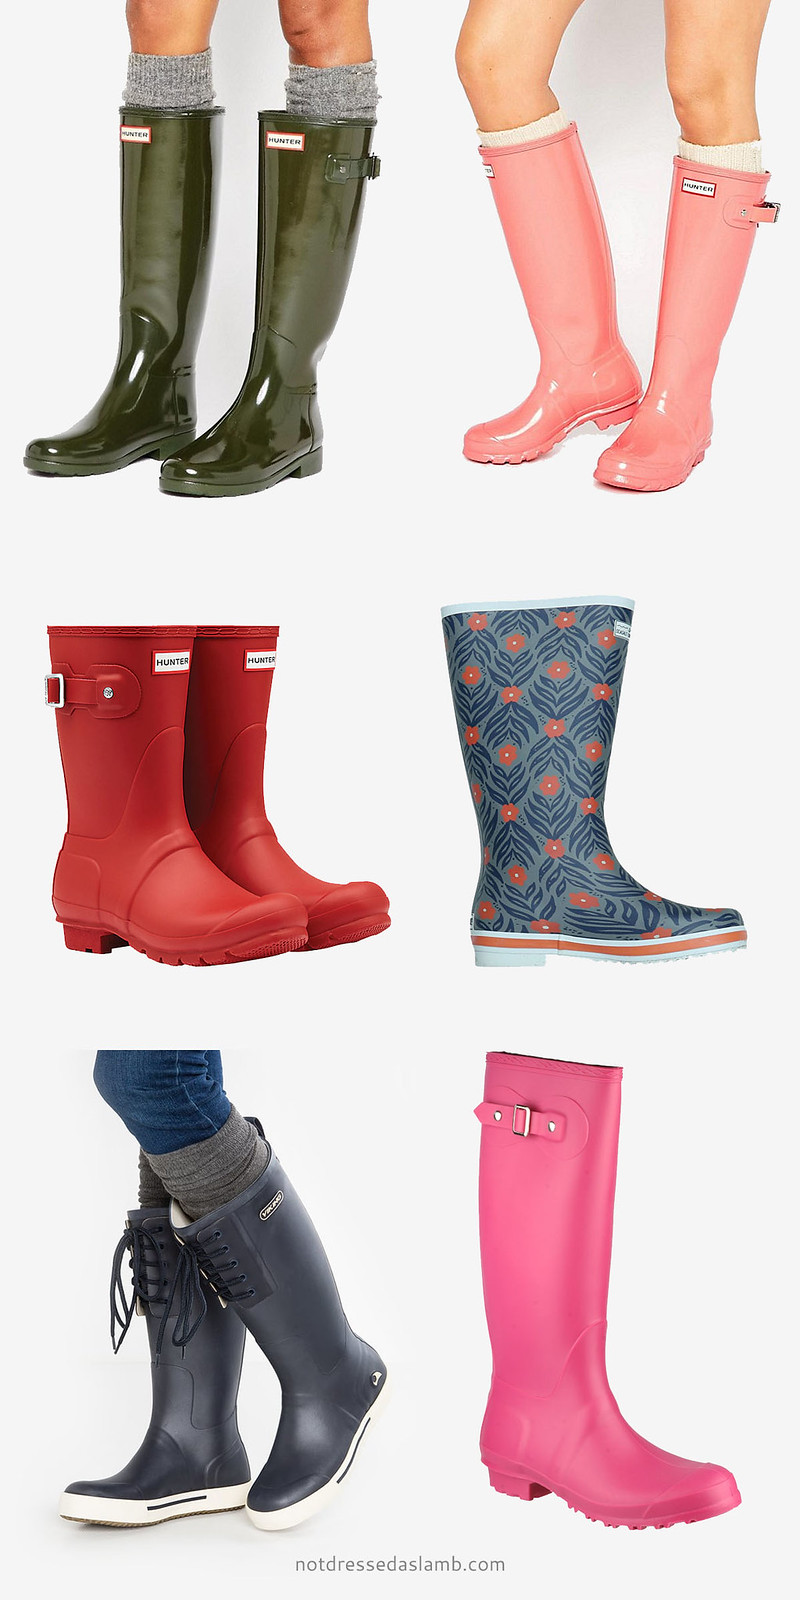 Capsule wardrobe: 18 colourful and stylish Wellington boots / welly boots / wellies to shop | Not Dressed As Lamb